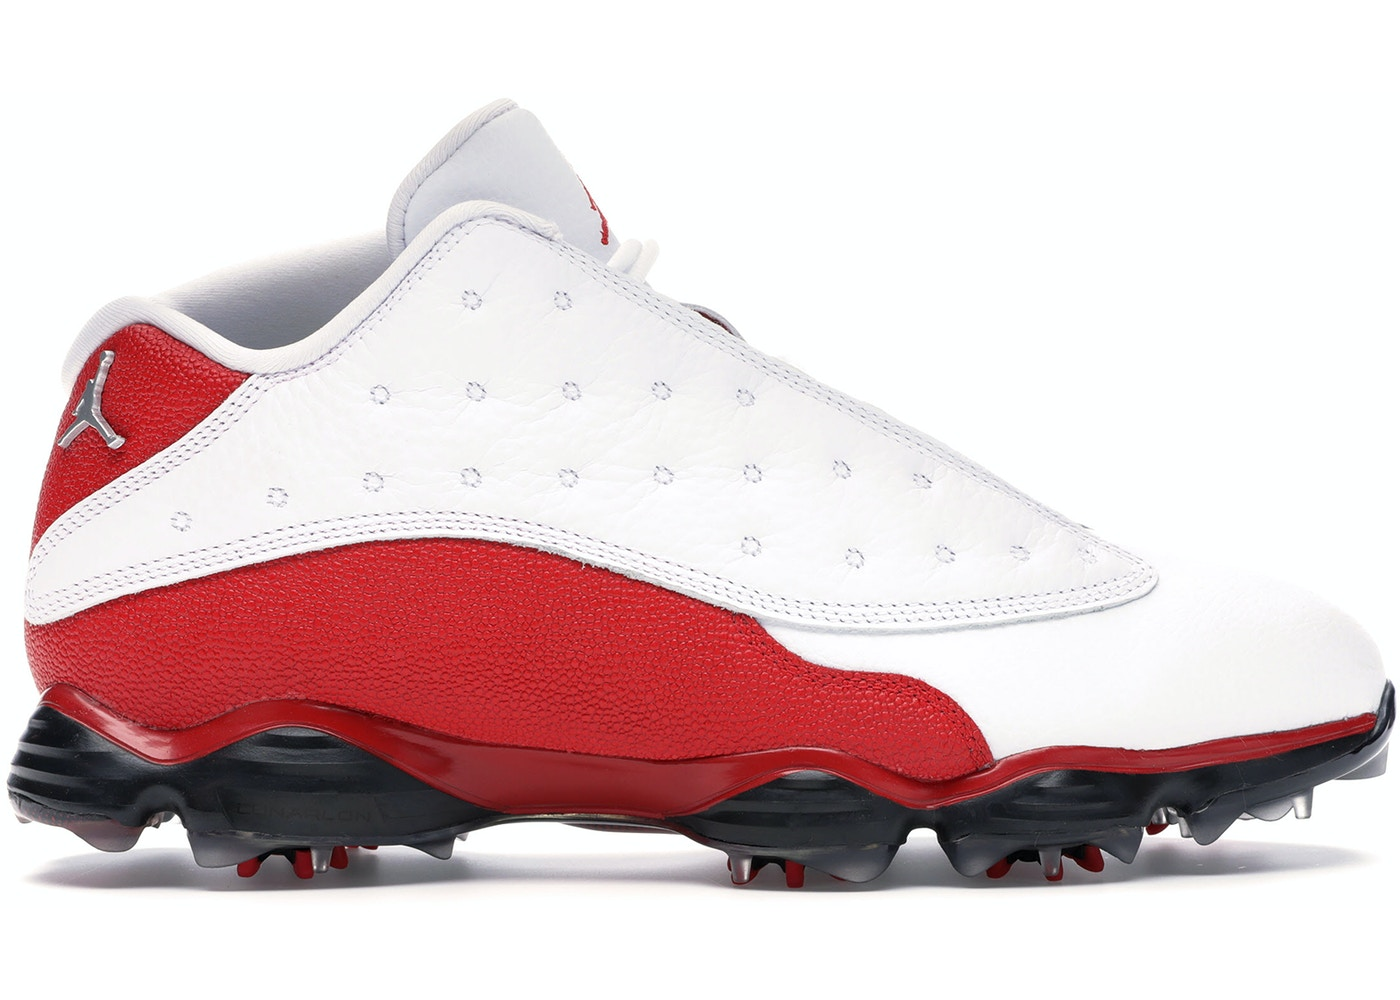 brand new 8c513 2d596 Jordan 13 Retro Golf Cleat White Red